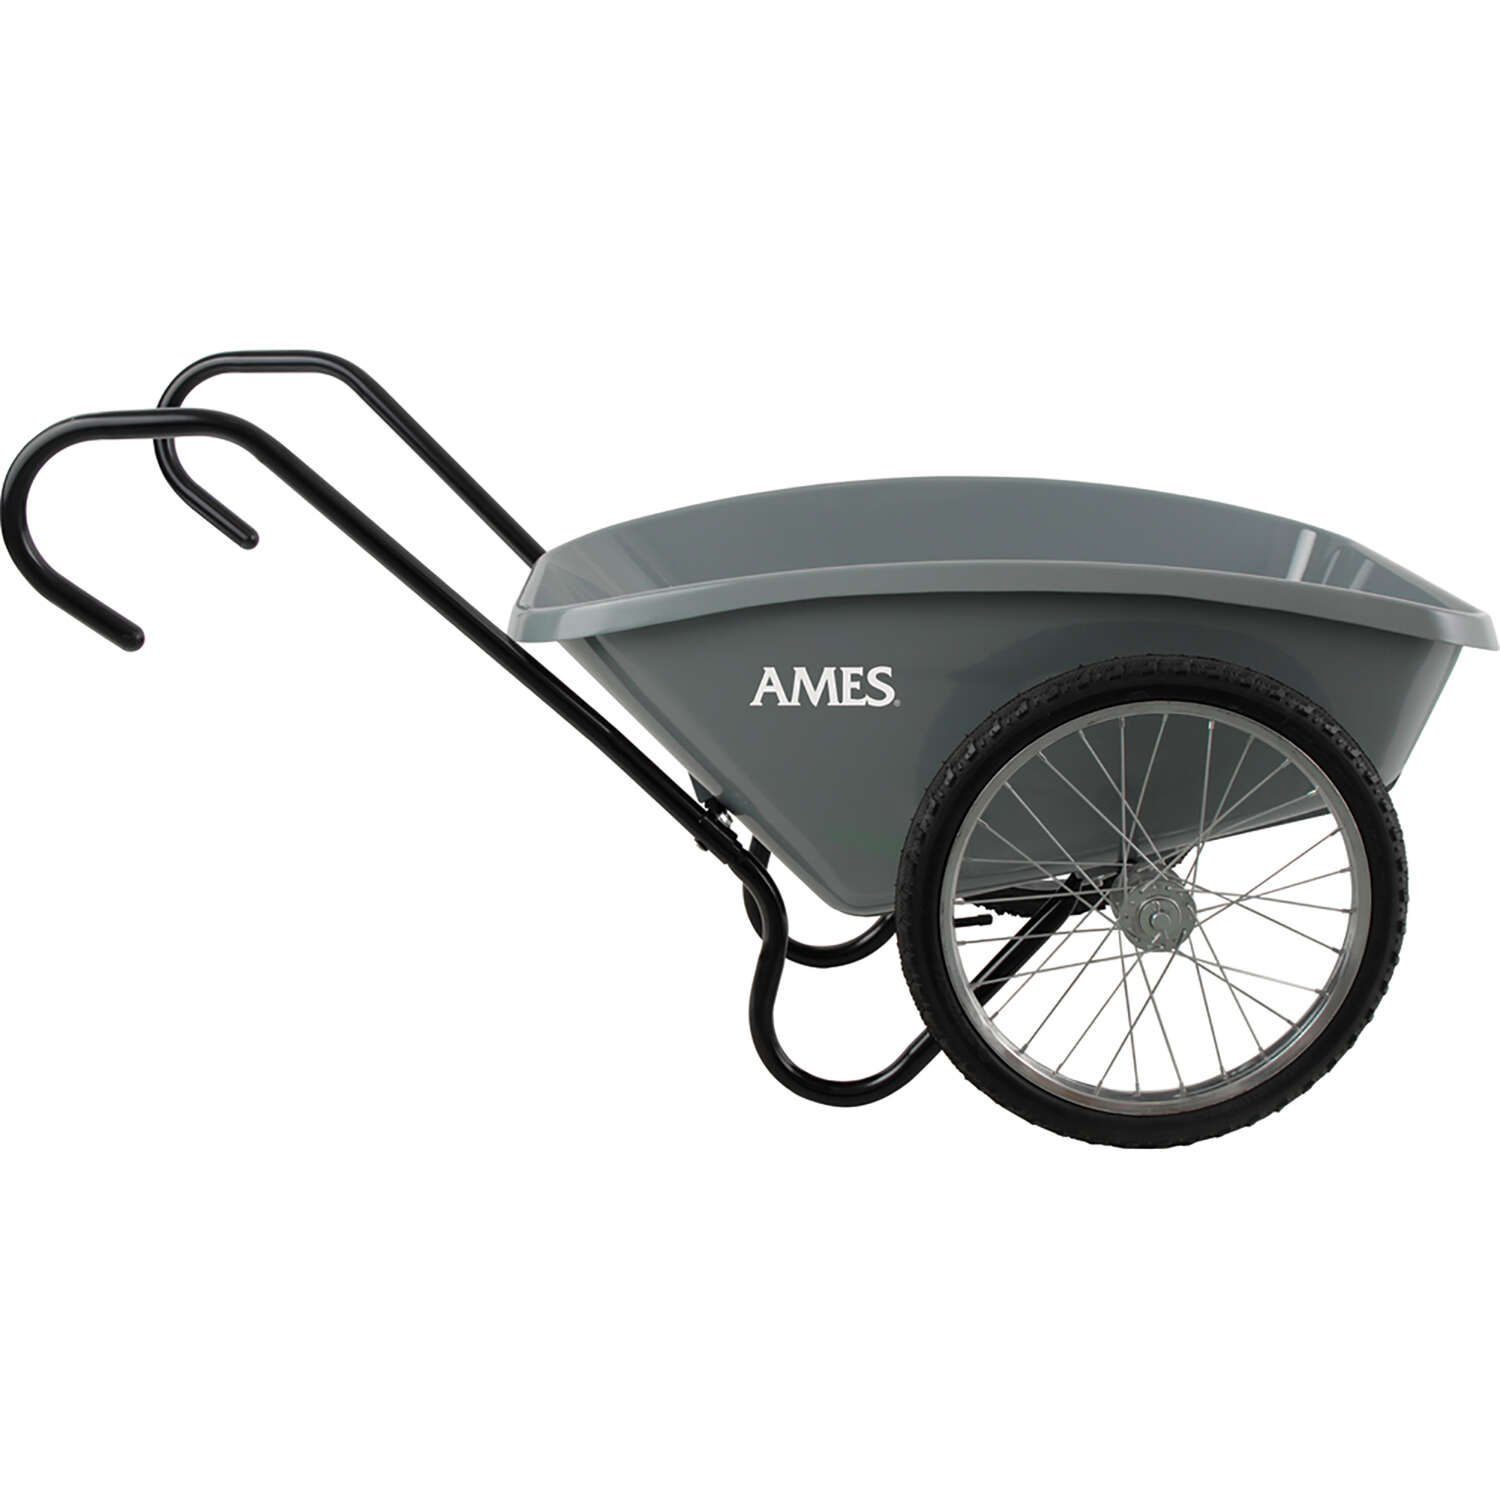 Ames  Poly  Garden Cart  5 cu. ft.